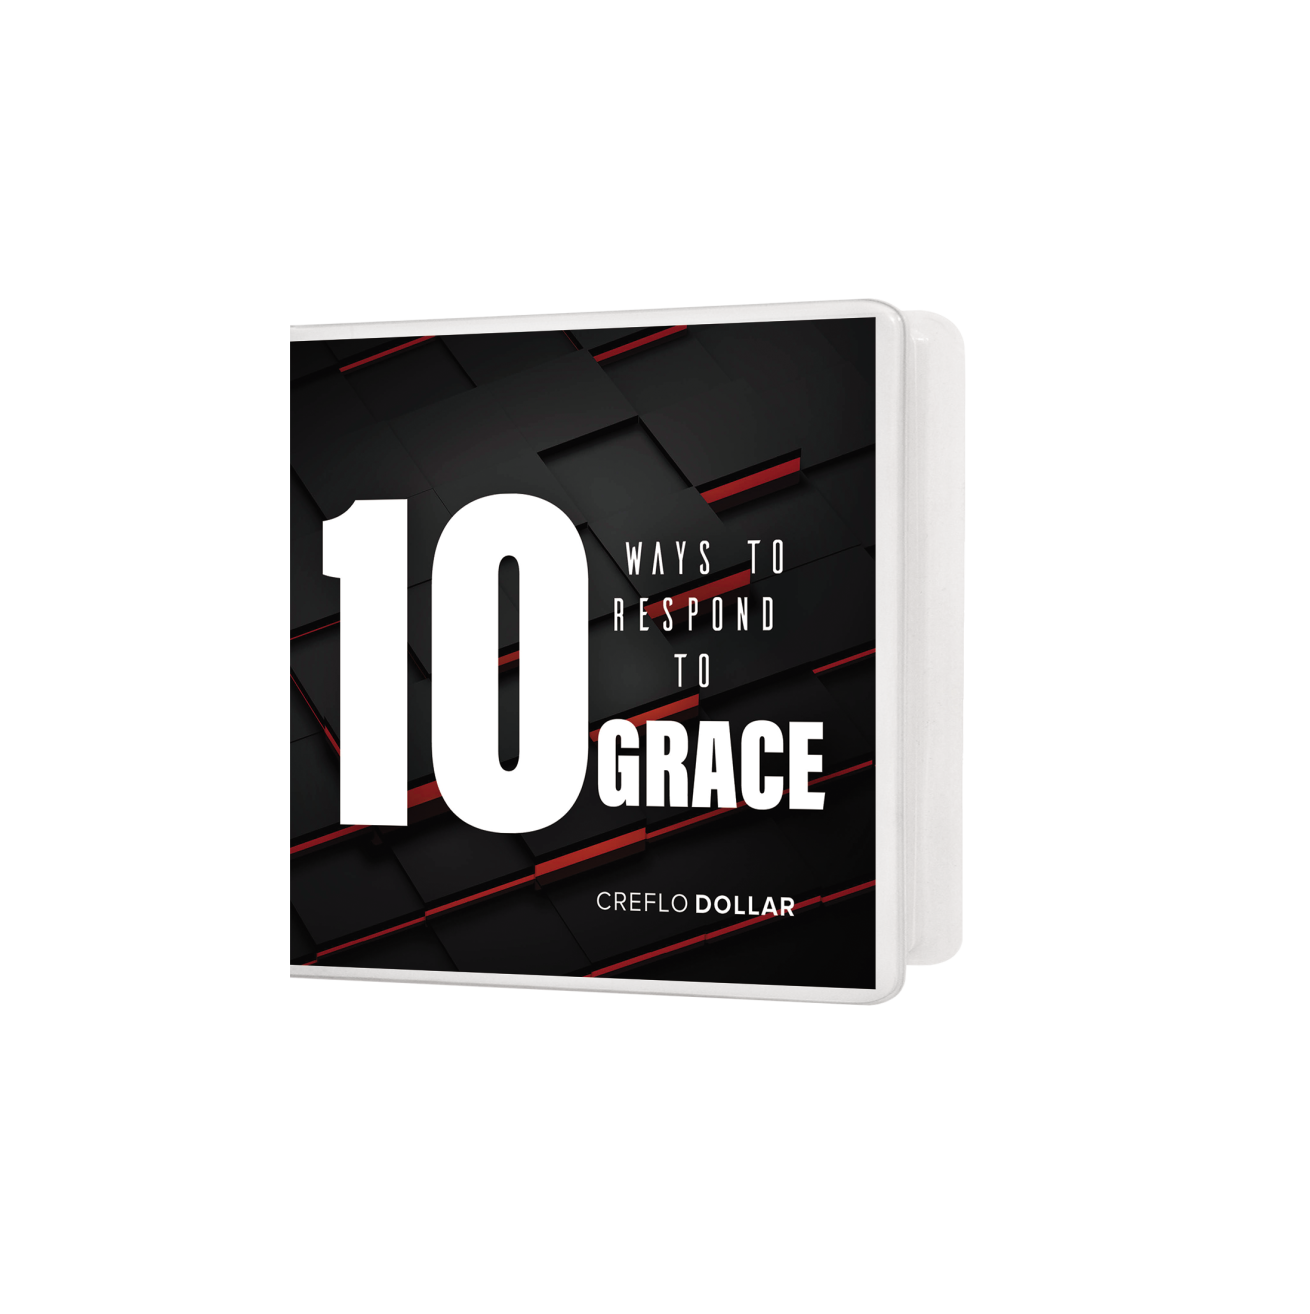 10 Ways to Respond to Grace